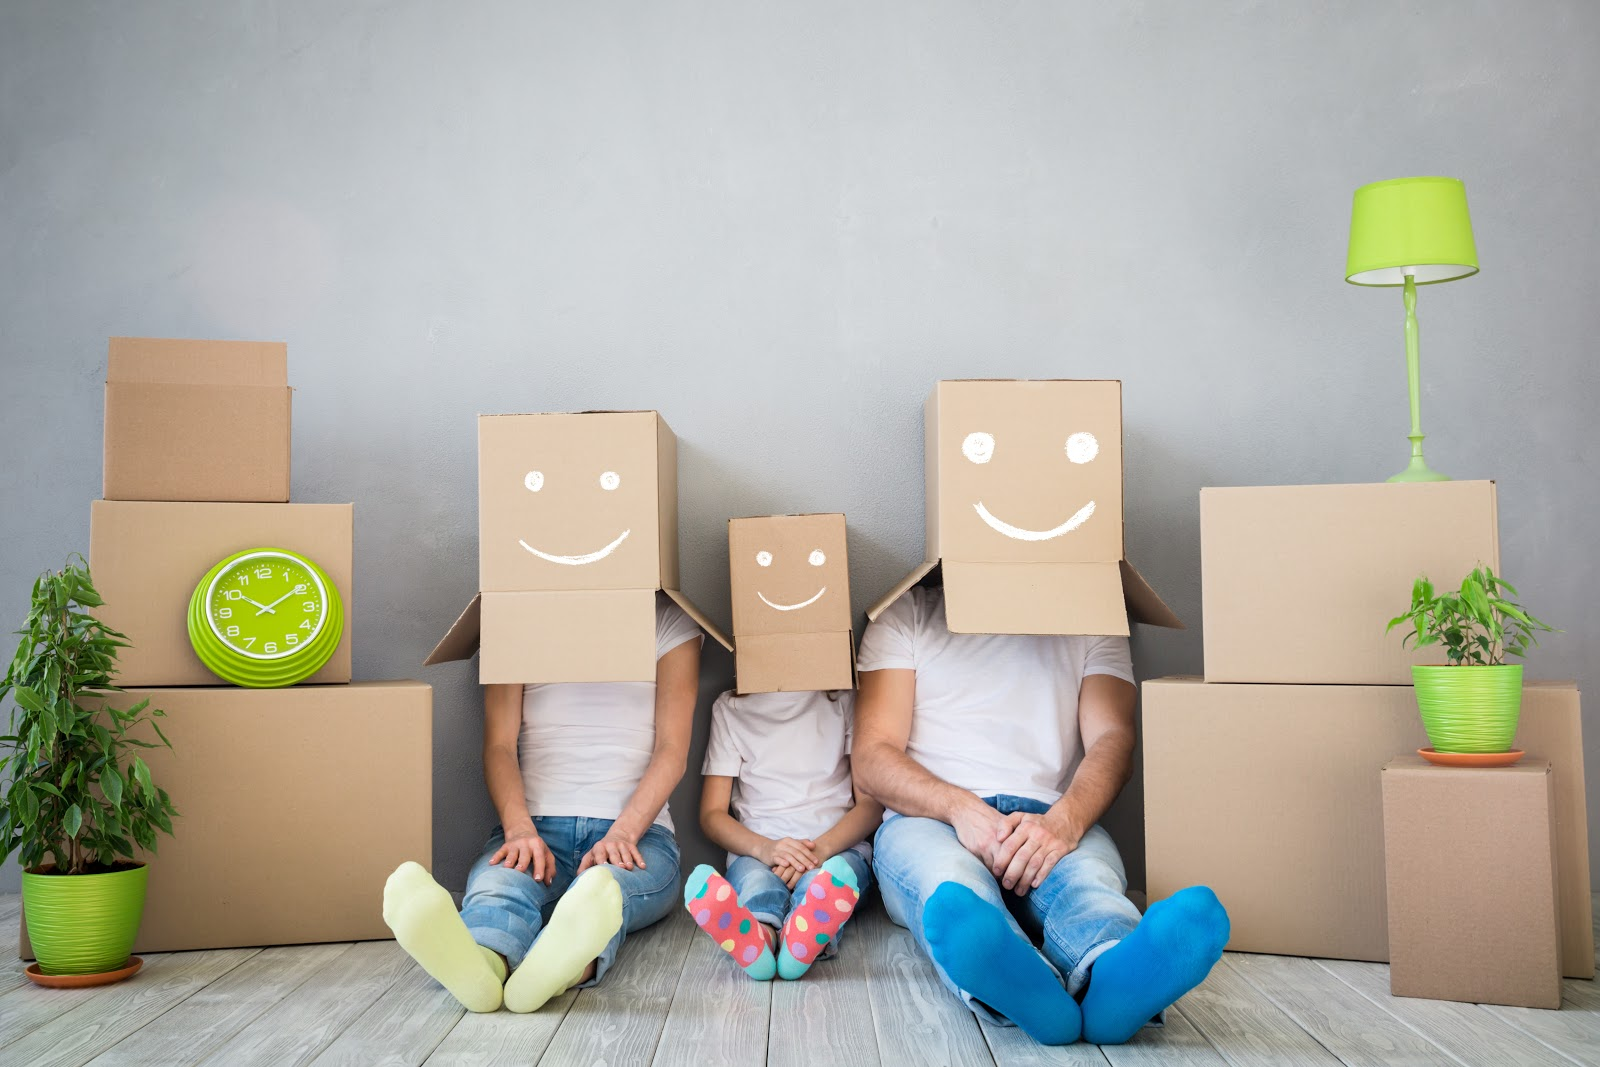 A family with moving boxes painted with smiley faces on their heads